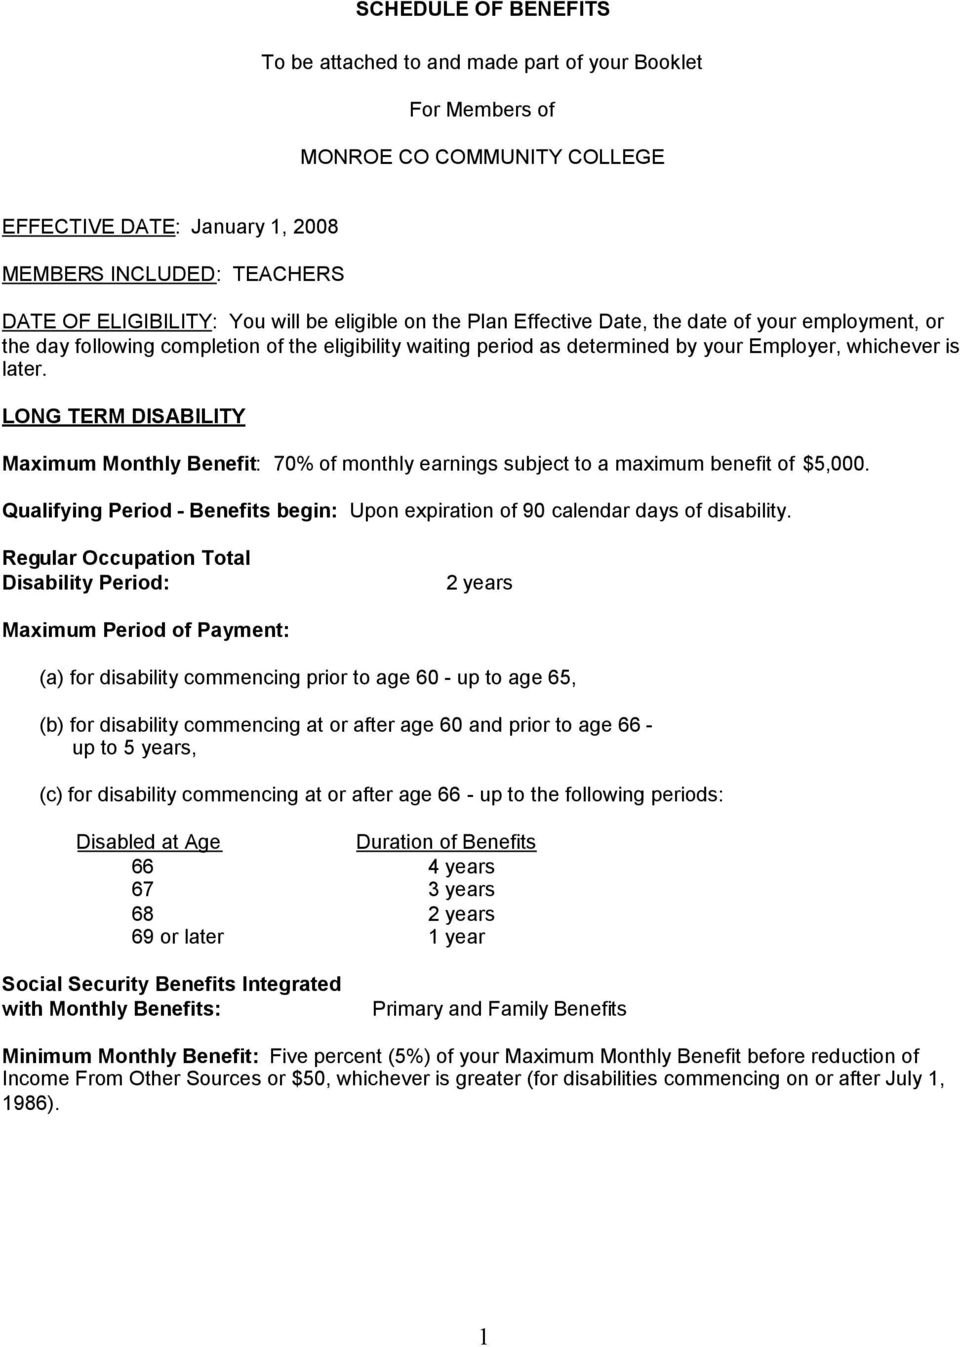 LONG TERM DISABILITY Maximum Monthly Benefit: 70% of monthly earnings subject to a maximum benefit of $5,000. Qualifying Period - Benefits begin: Upon expiration of 90 calendar days of disability.